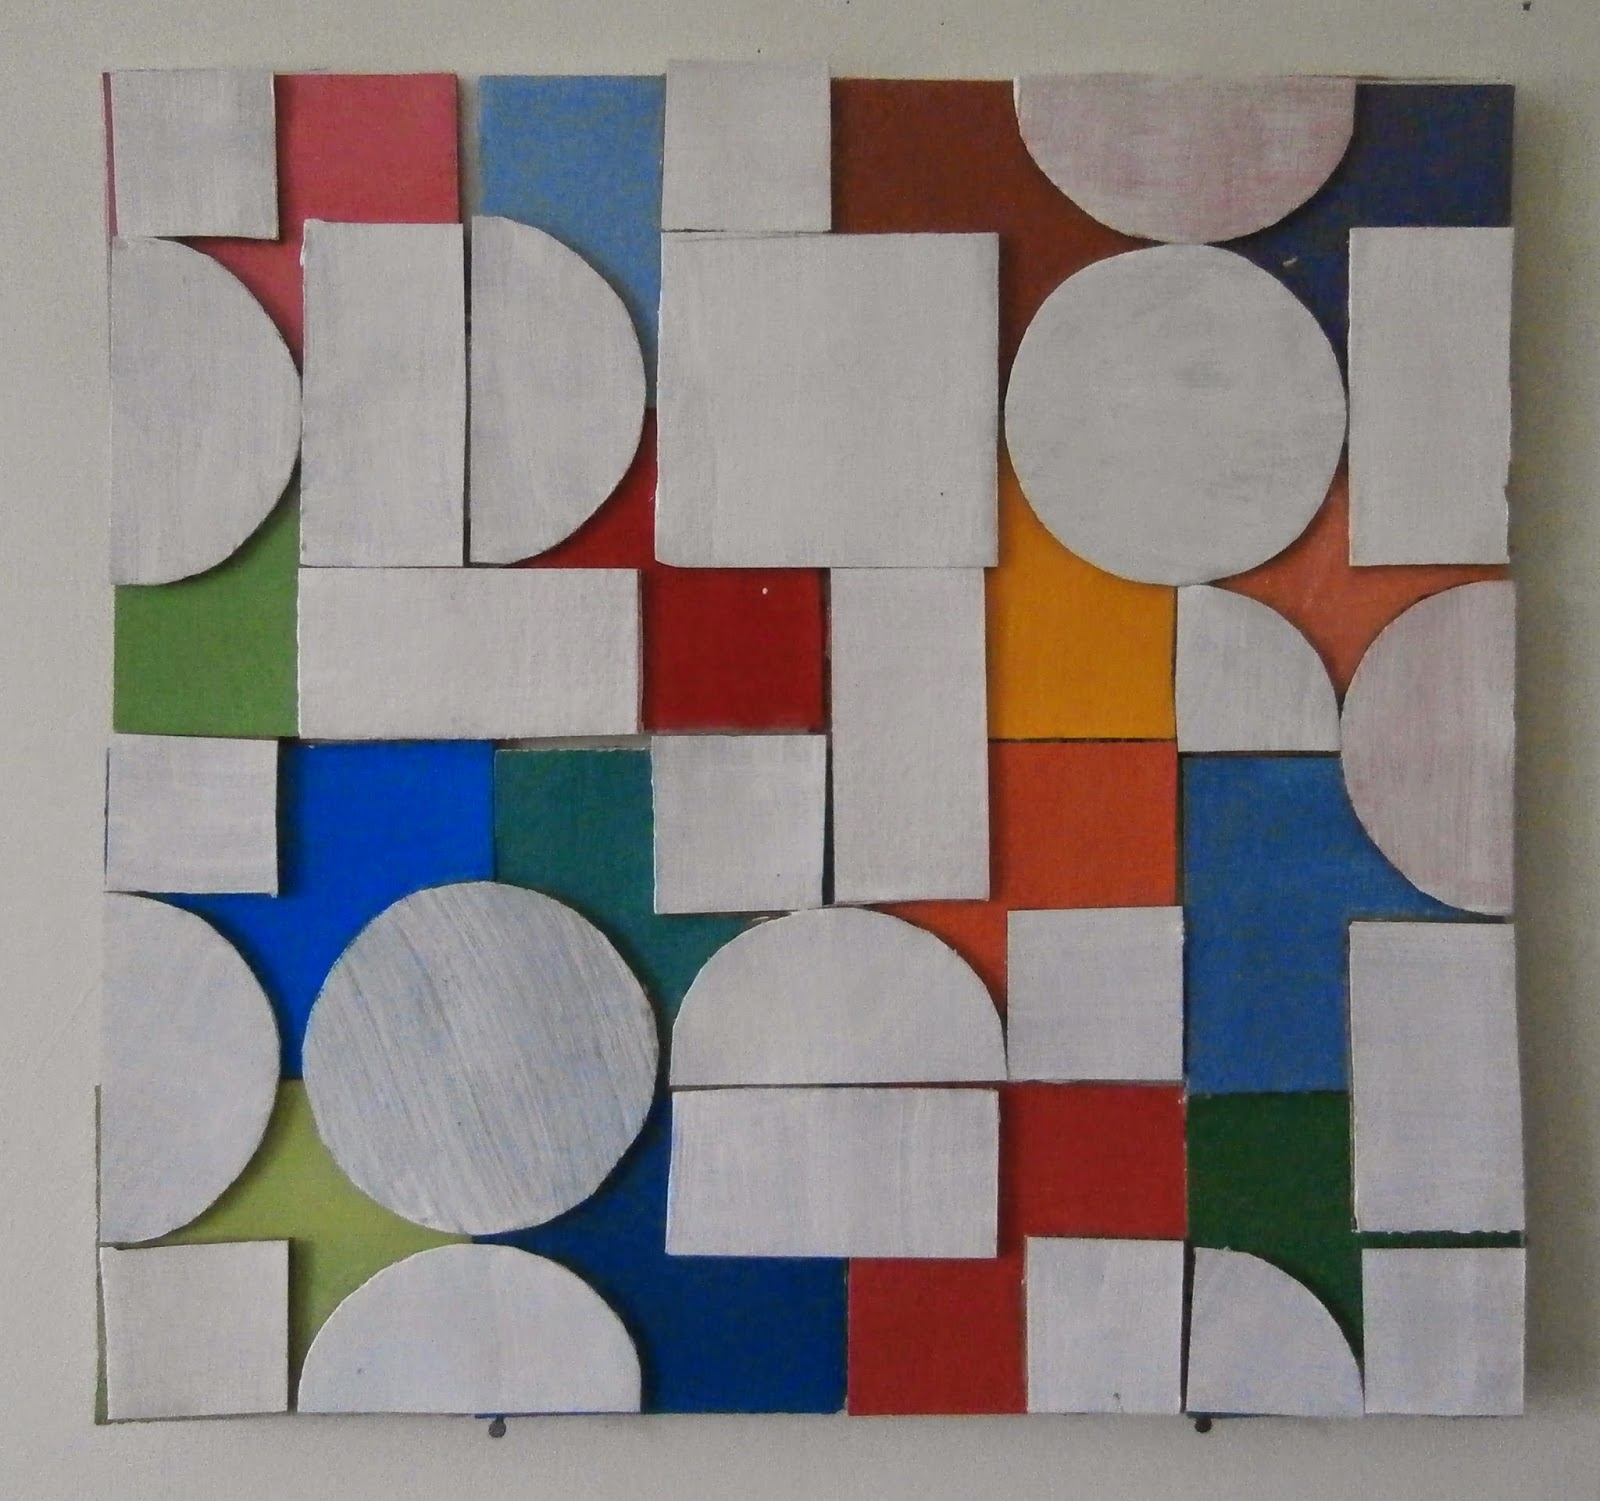 circle square cardboard, painting, kate mackay, art, geometric abstraction, non objective, fire station gallery, dubbo